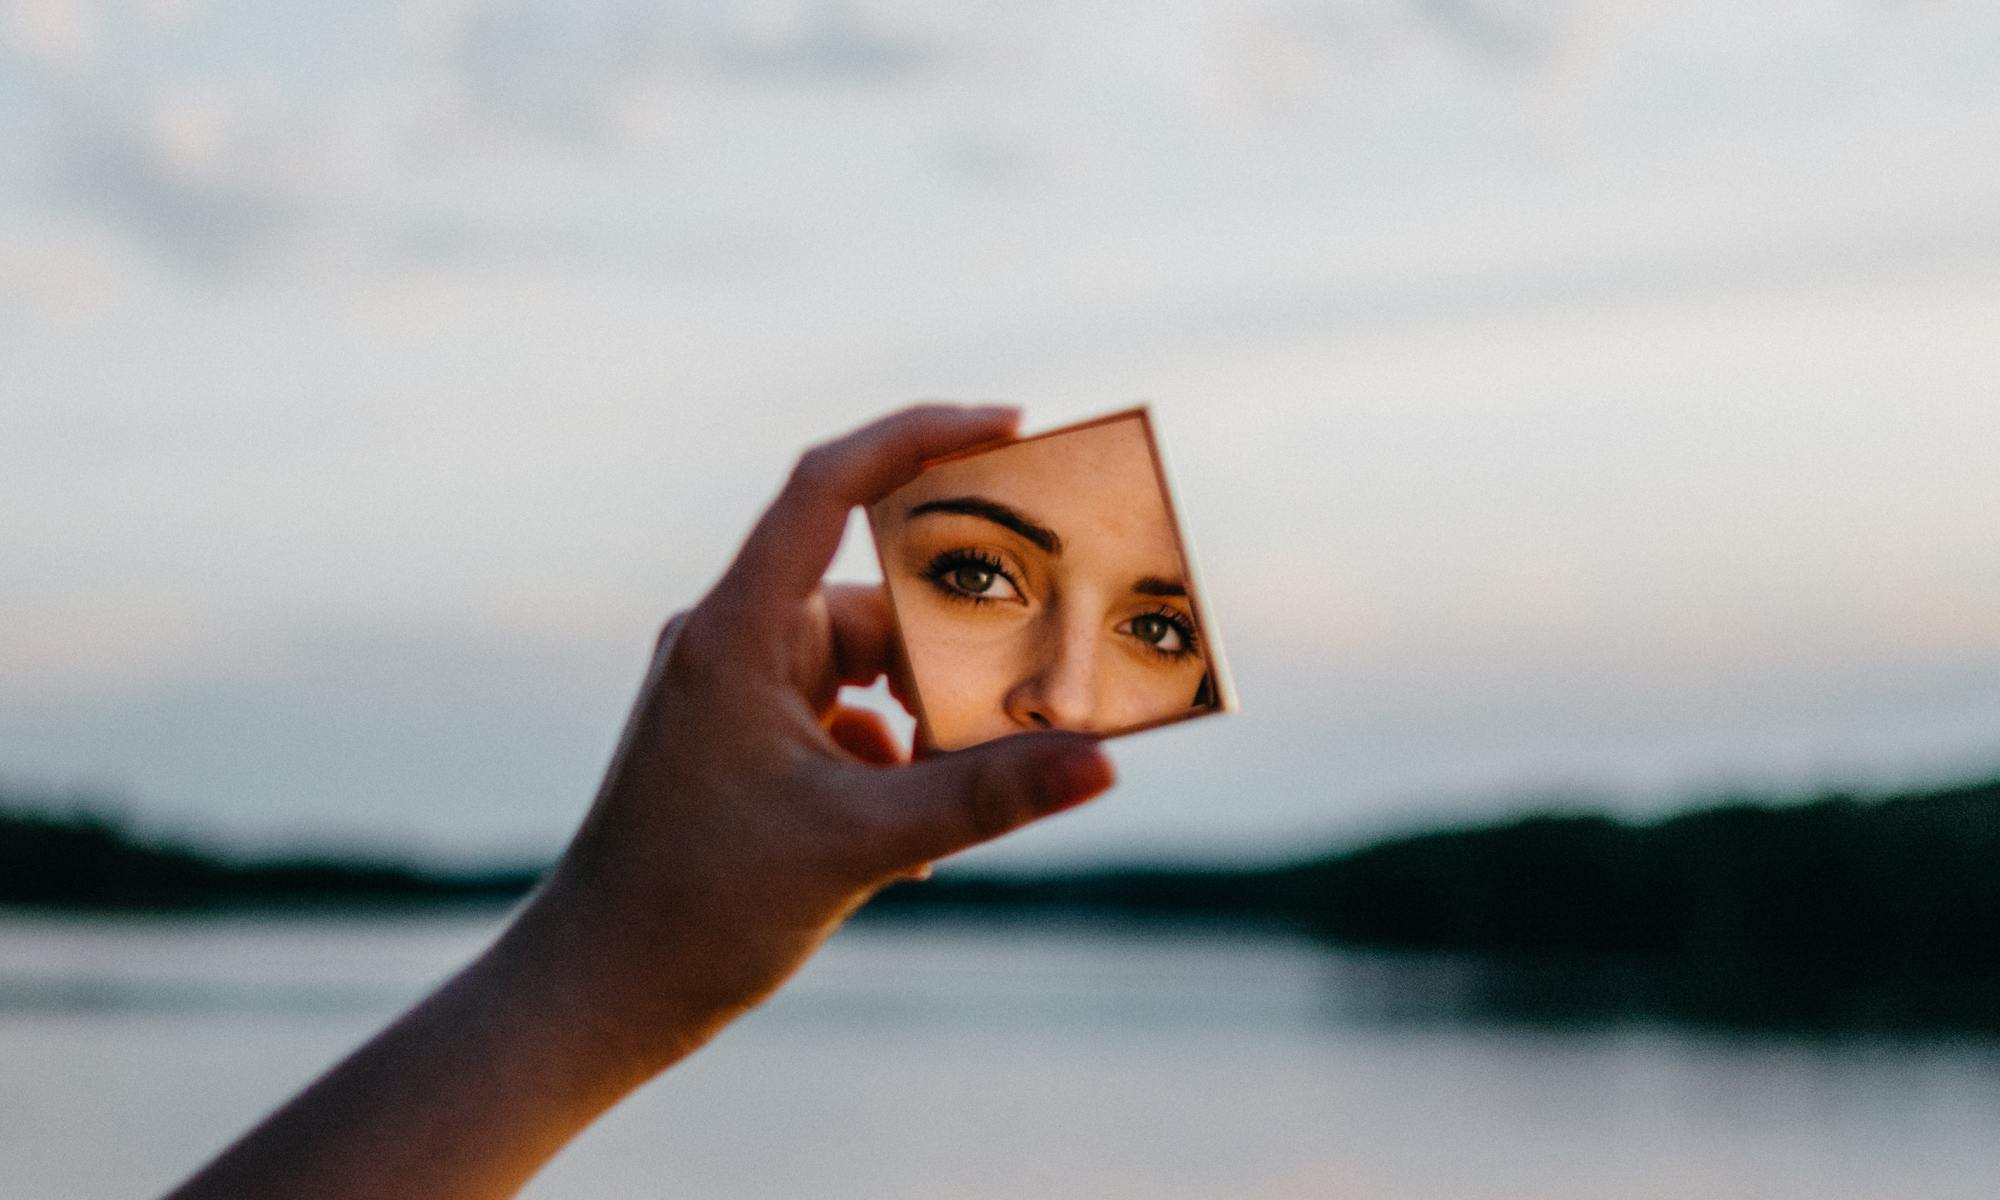 Woman looking at herself in a hand mirror